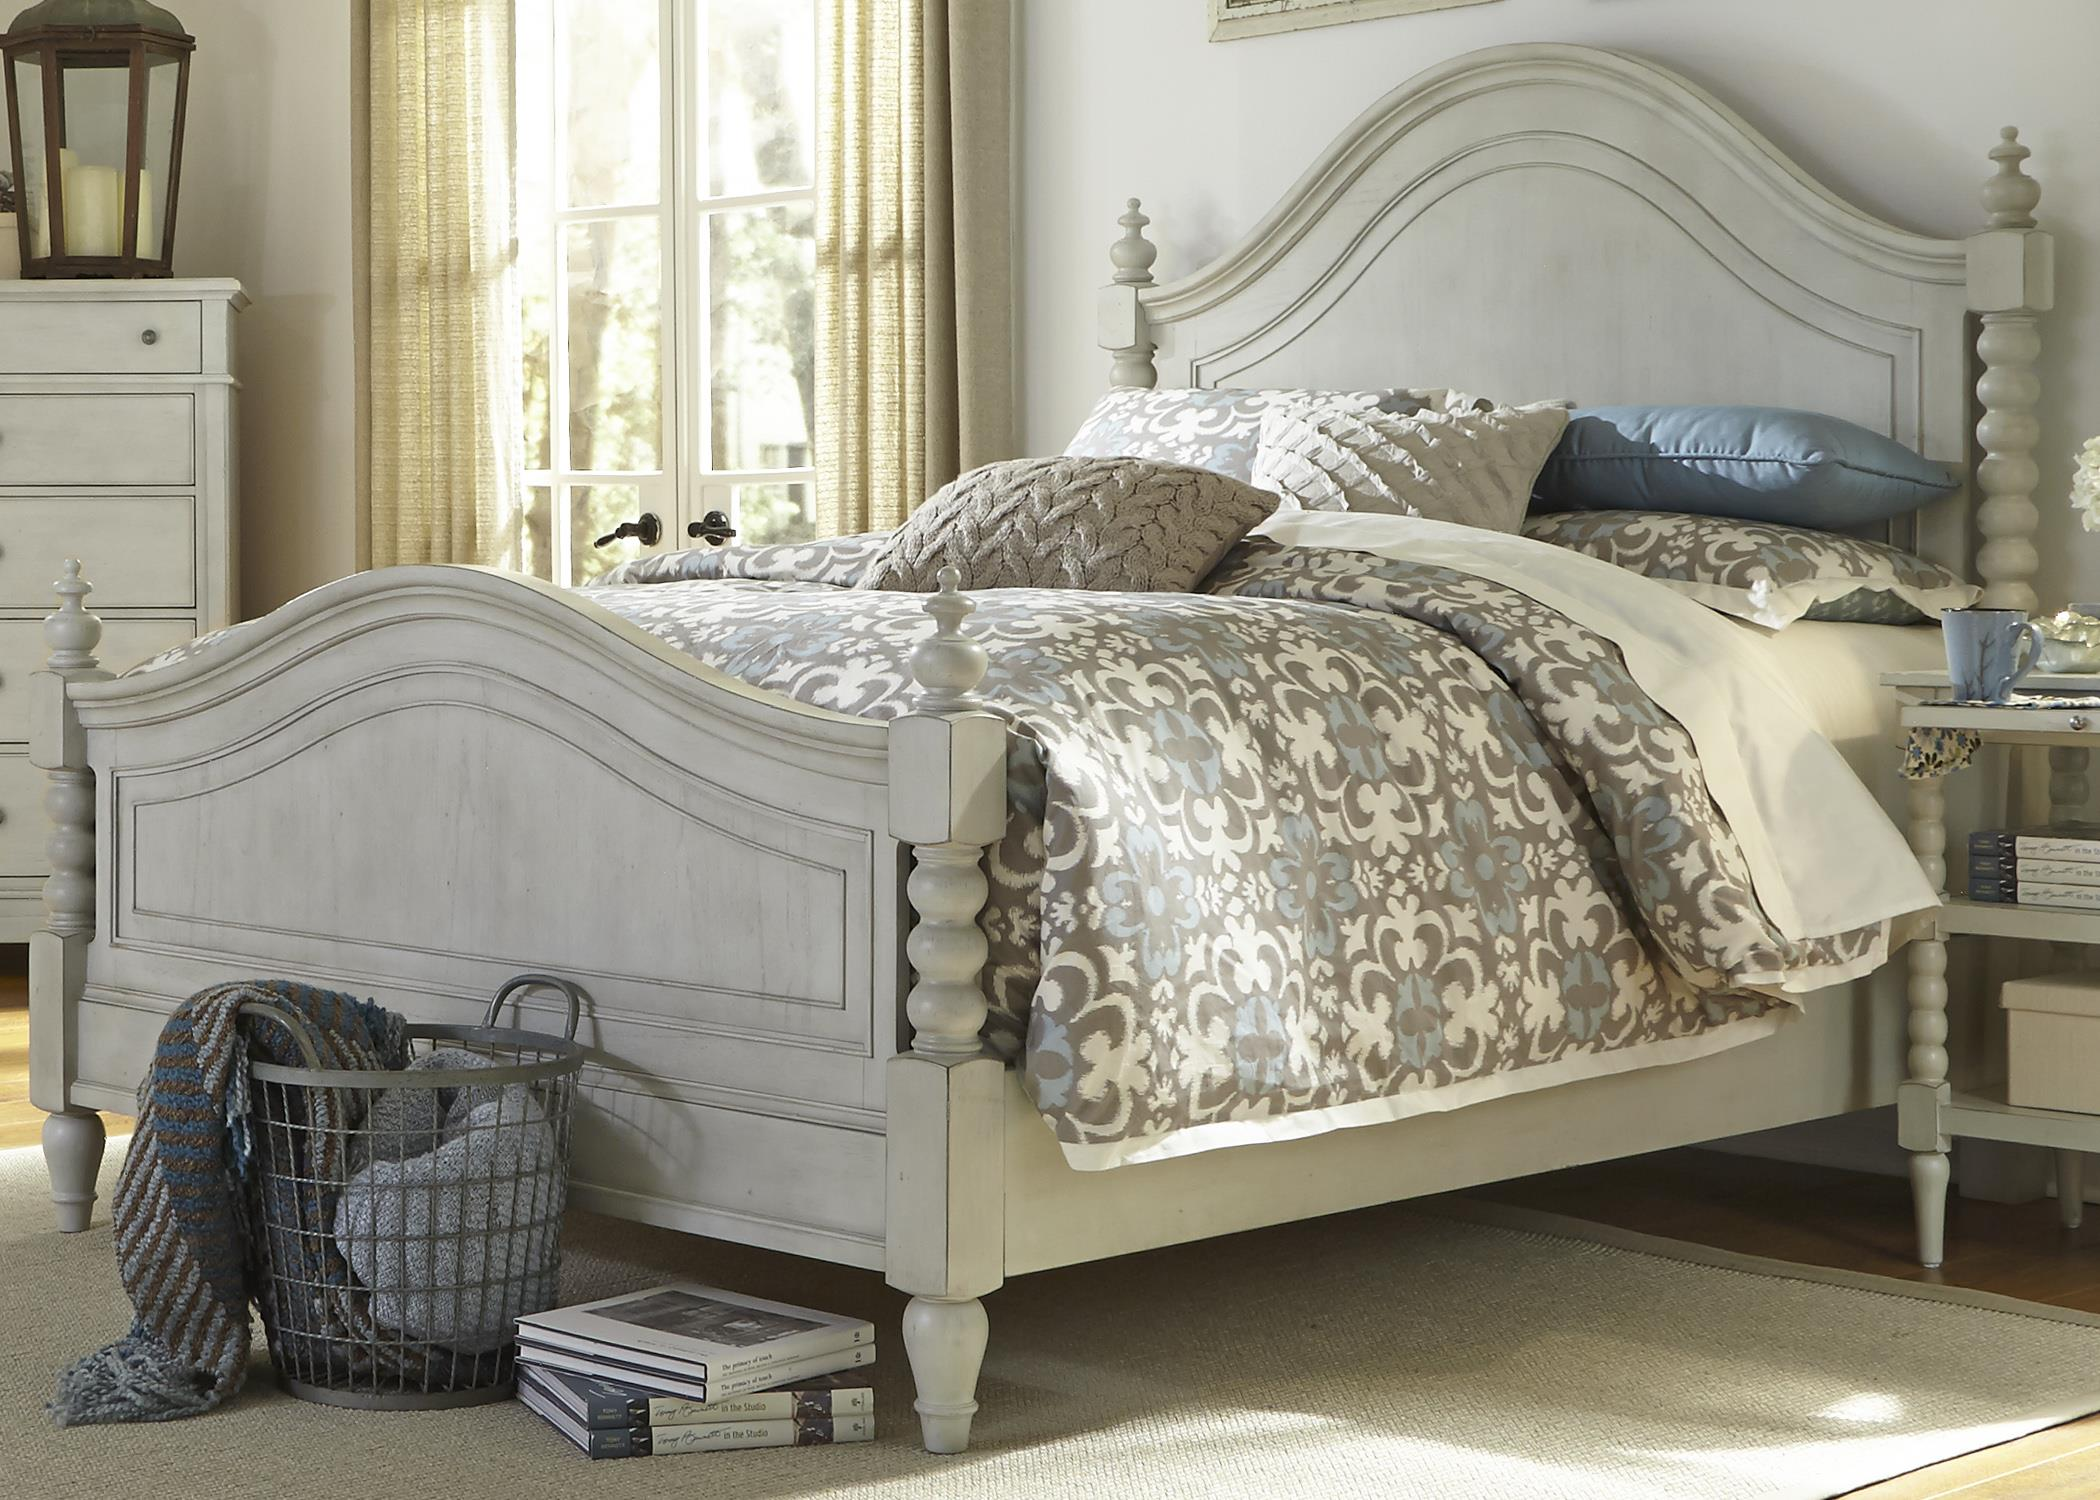 Harbor View King Poster Bed with Barley Twist Accents by Liberty Furniture at Northeast Factory Direct